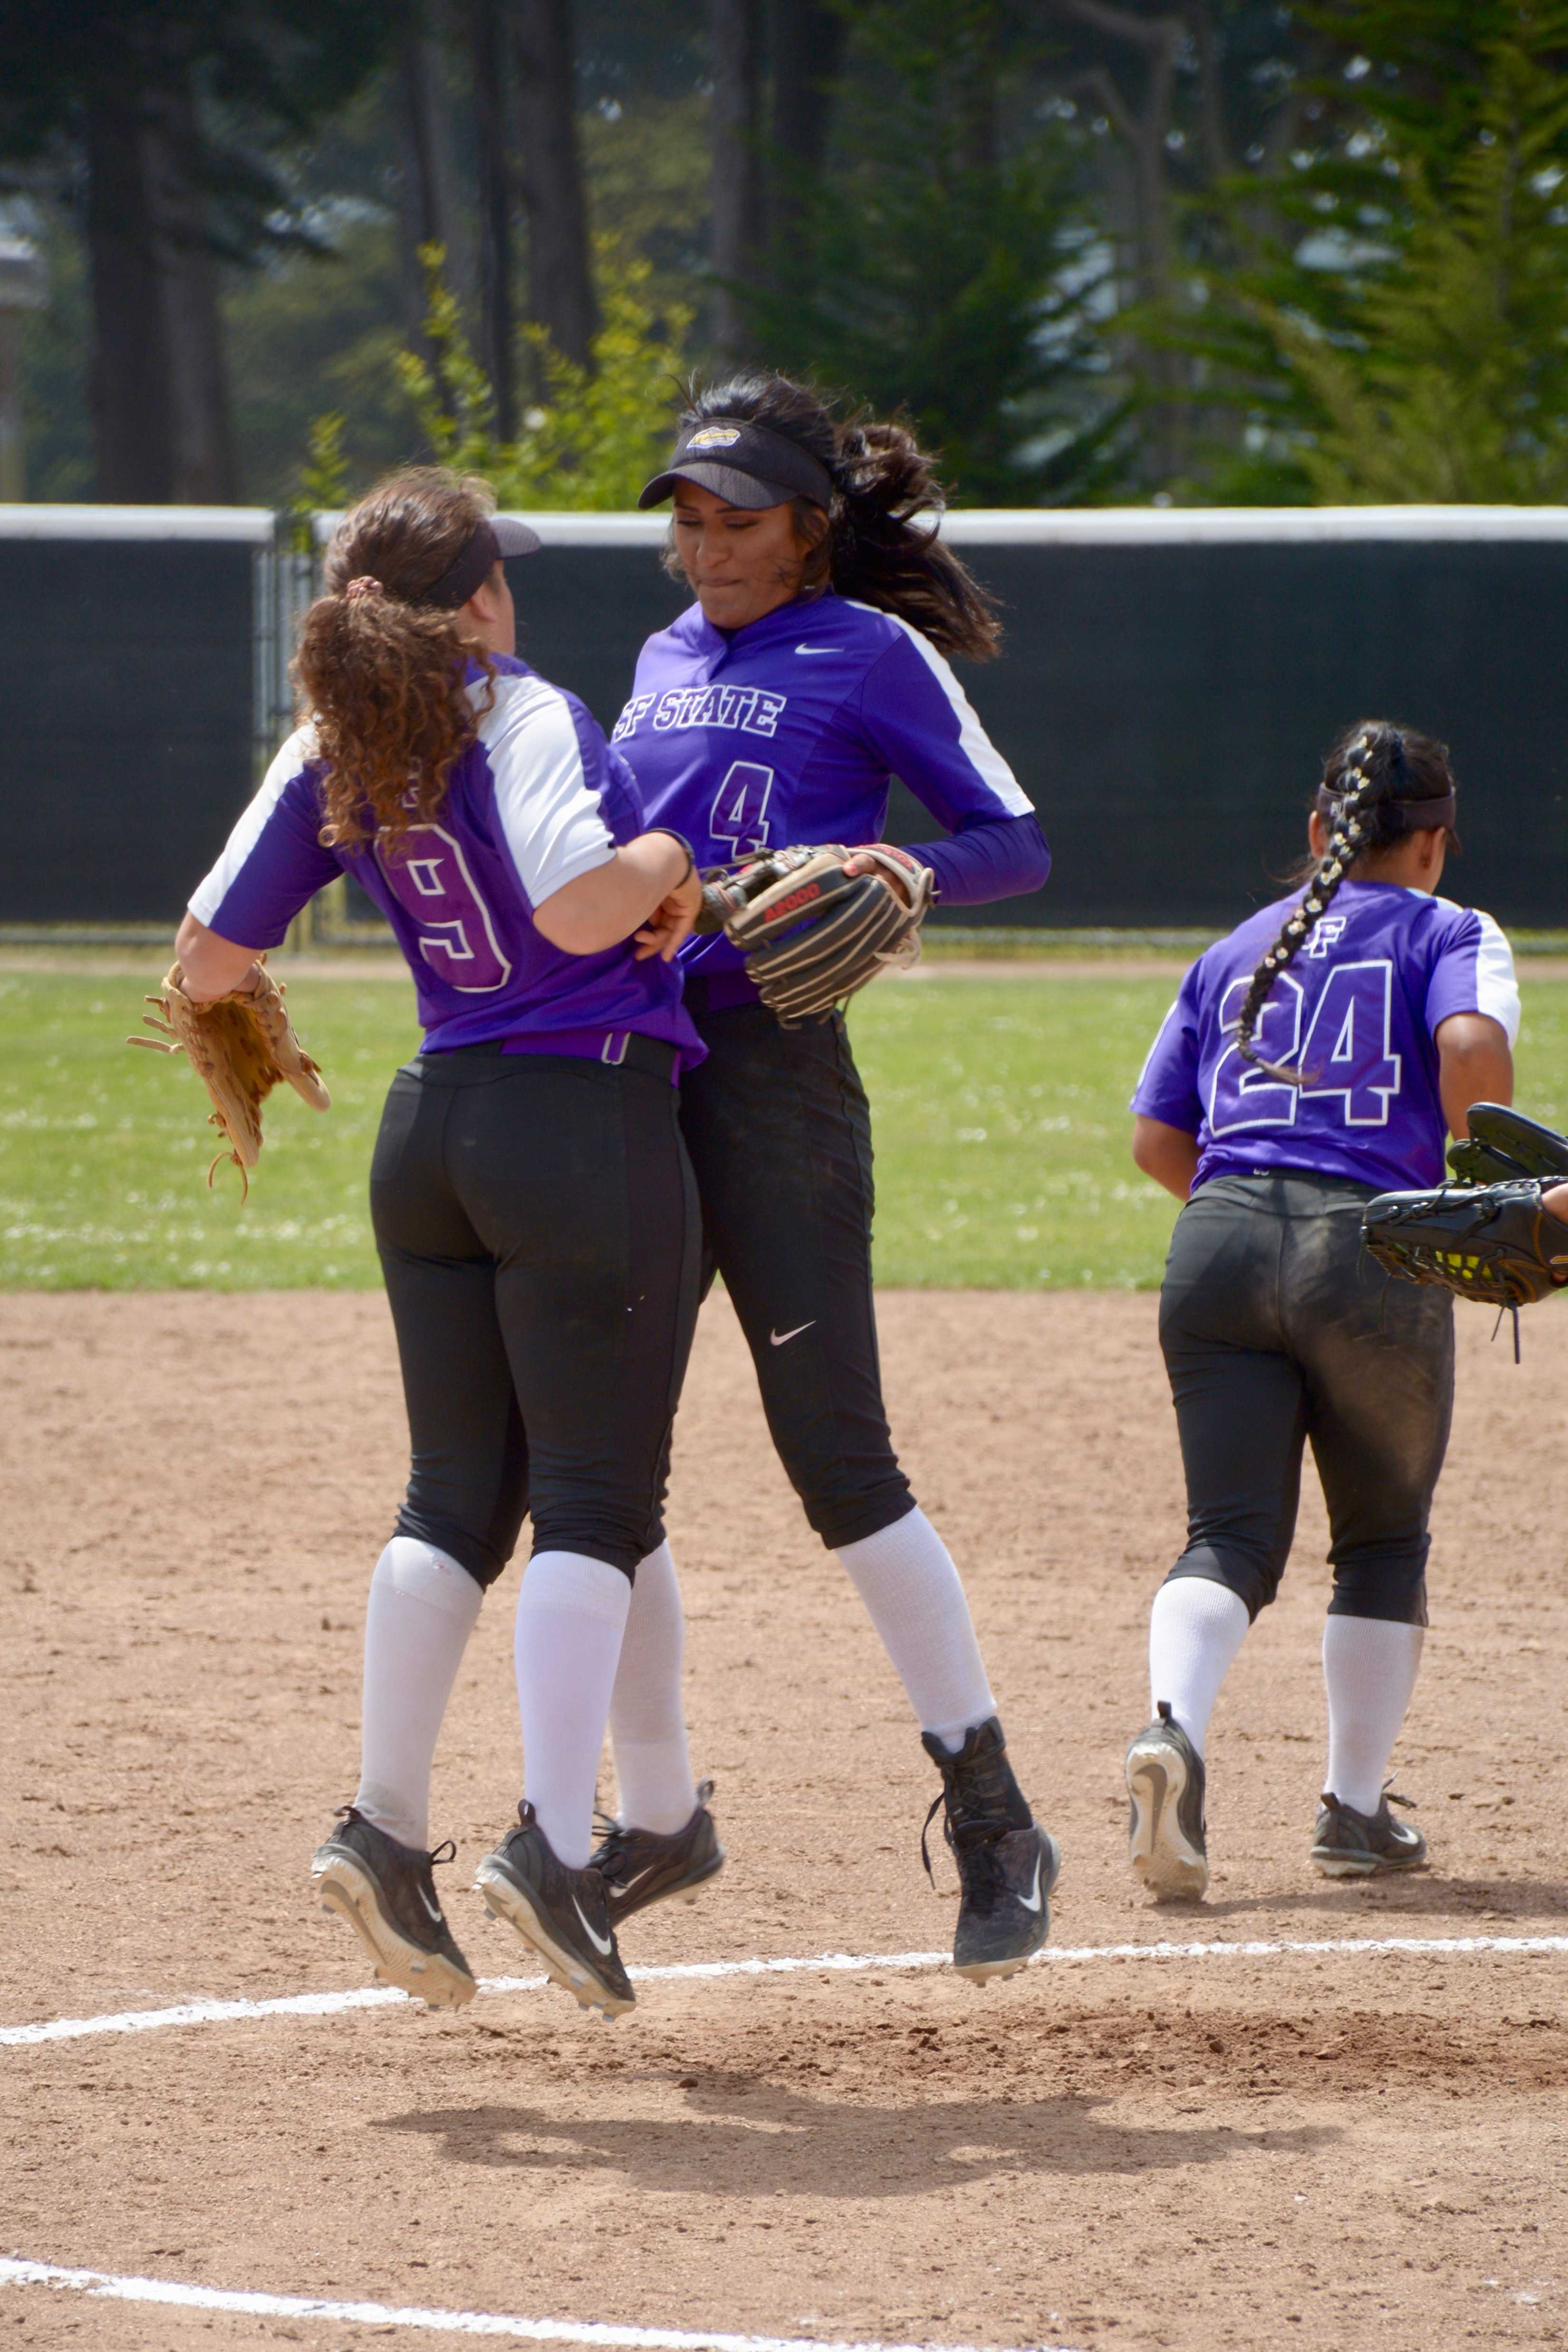 Hayley Nunes chest bumps Michele Castro during the Gators game against the CSU East Bay Pioneer's in a doubleheader for Senior Day on Saturday, April 27th, 2019. Photos by Tristen Rowean.